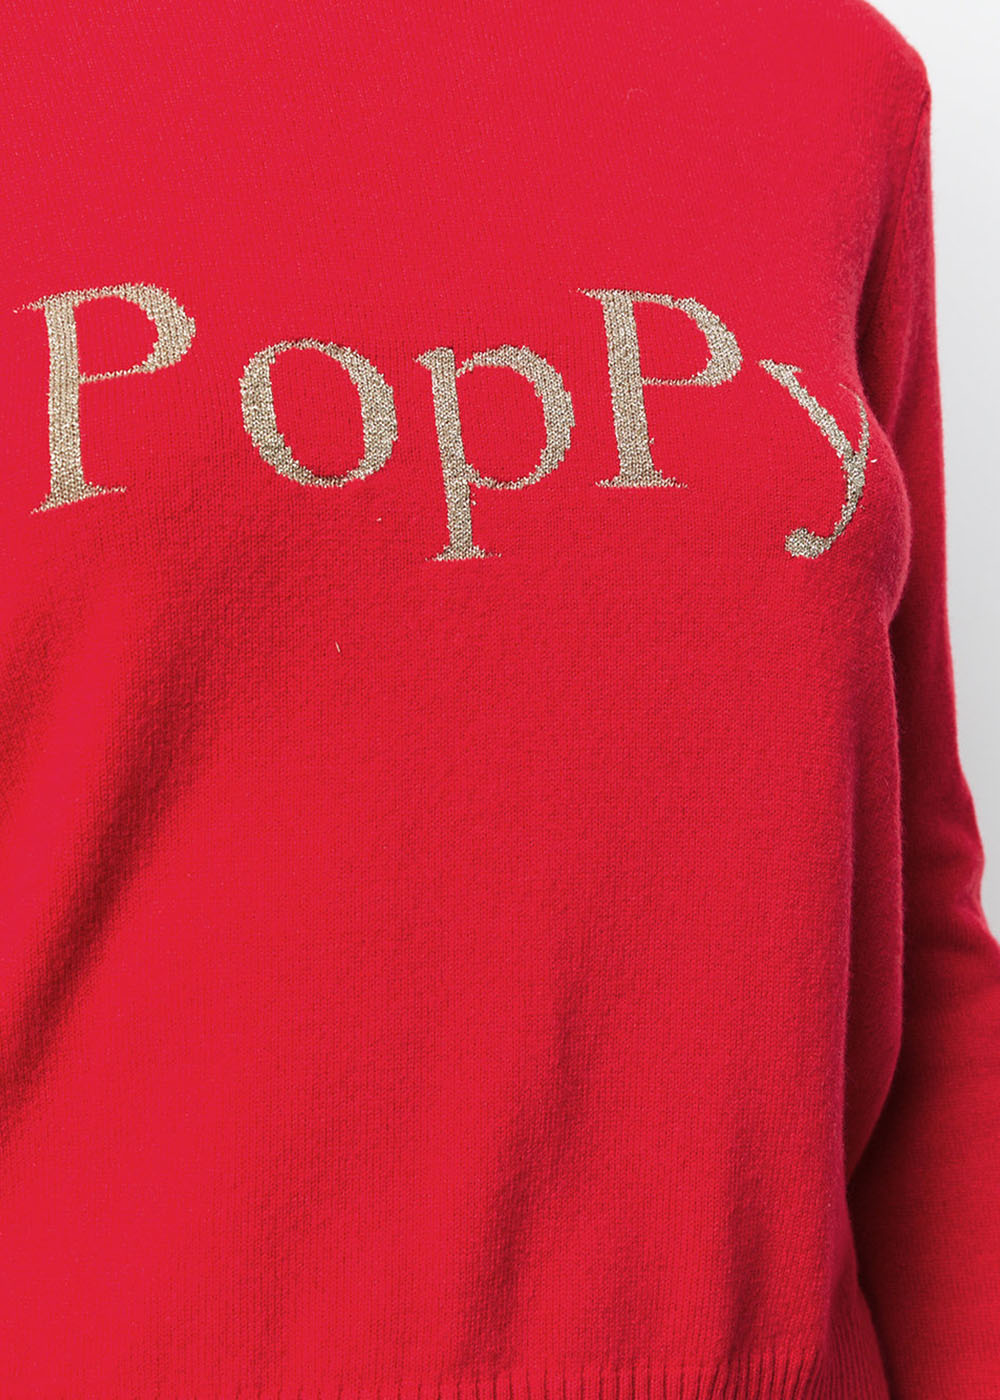 *Poppy* Retro Floral Jumper